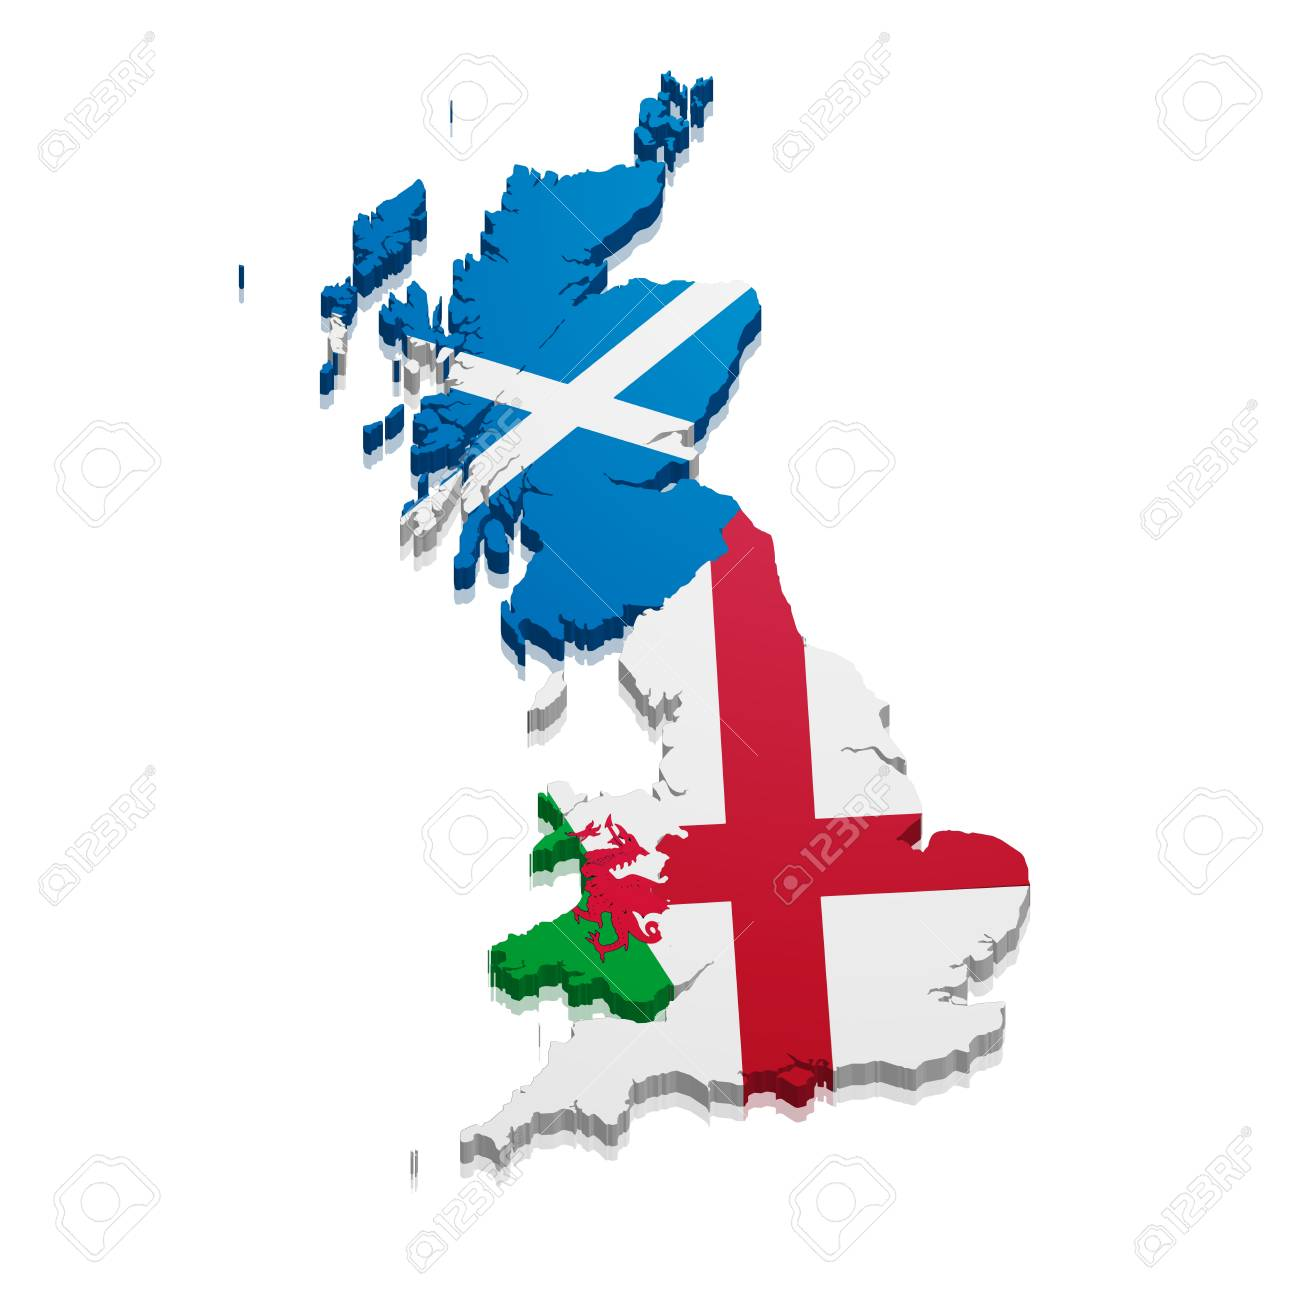 Map Of England Wales Scotland.Detailed Illustration Of A Map Of England Scotland And Wales